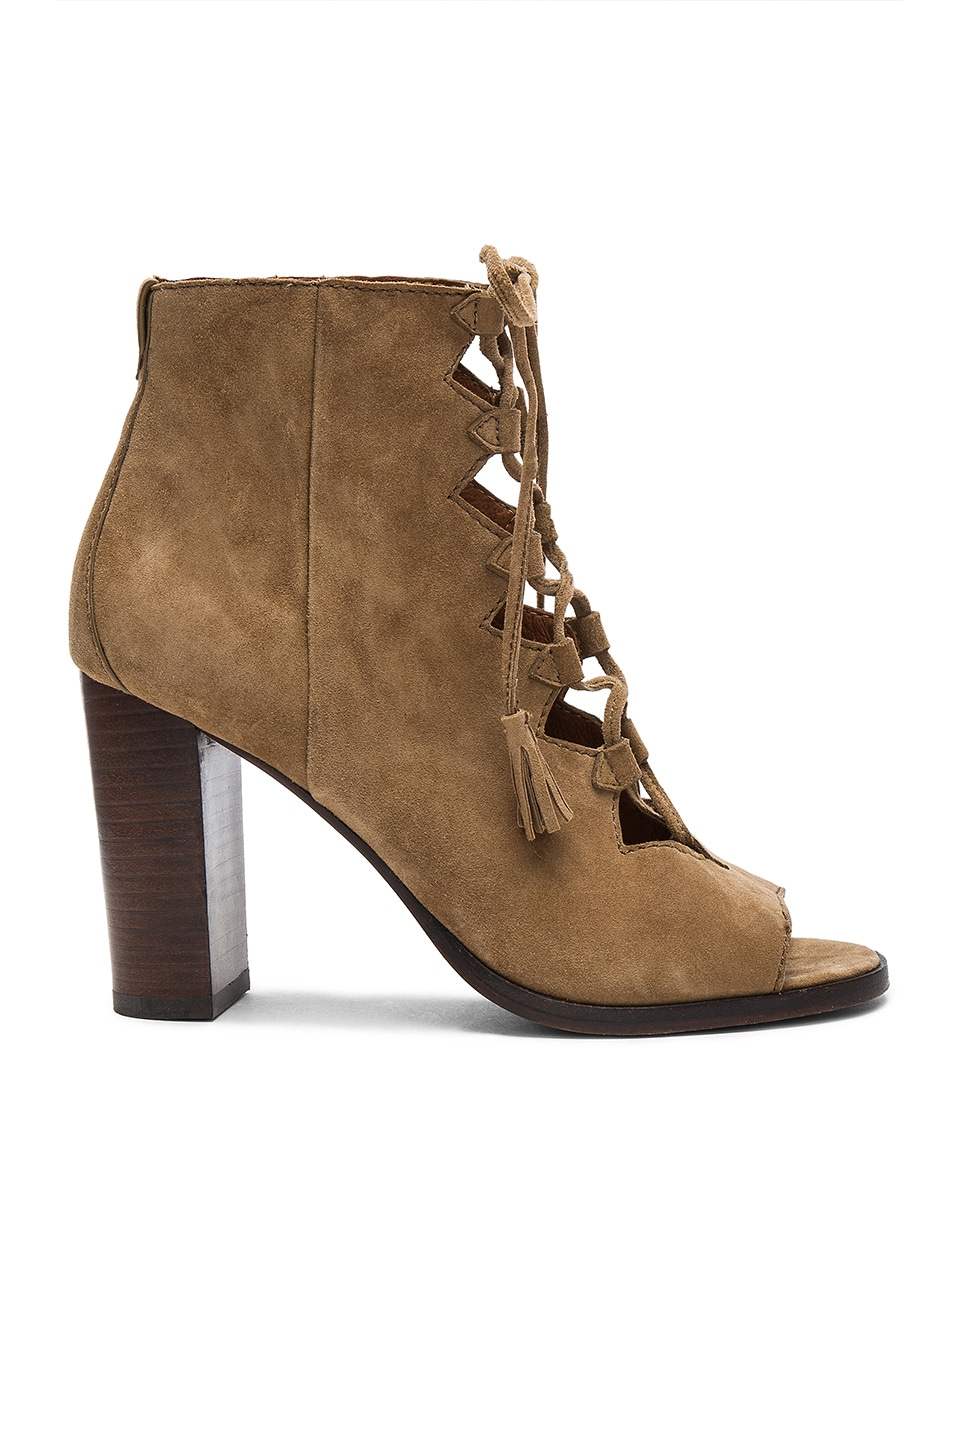 Photo of Gabby Ghillie Heel by Frye shoes